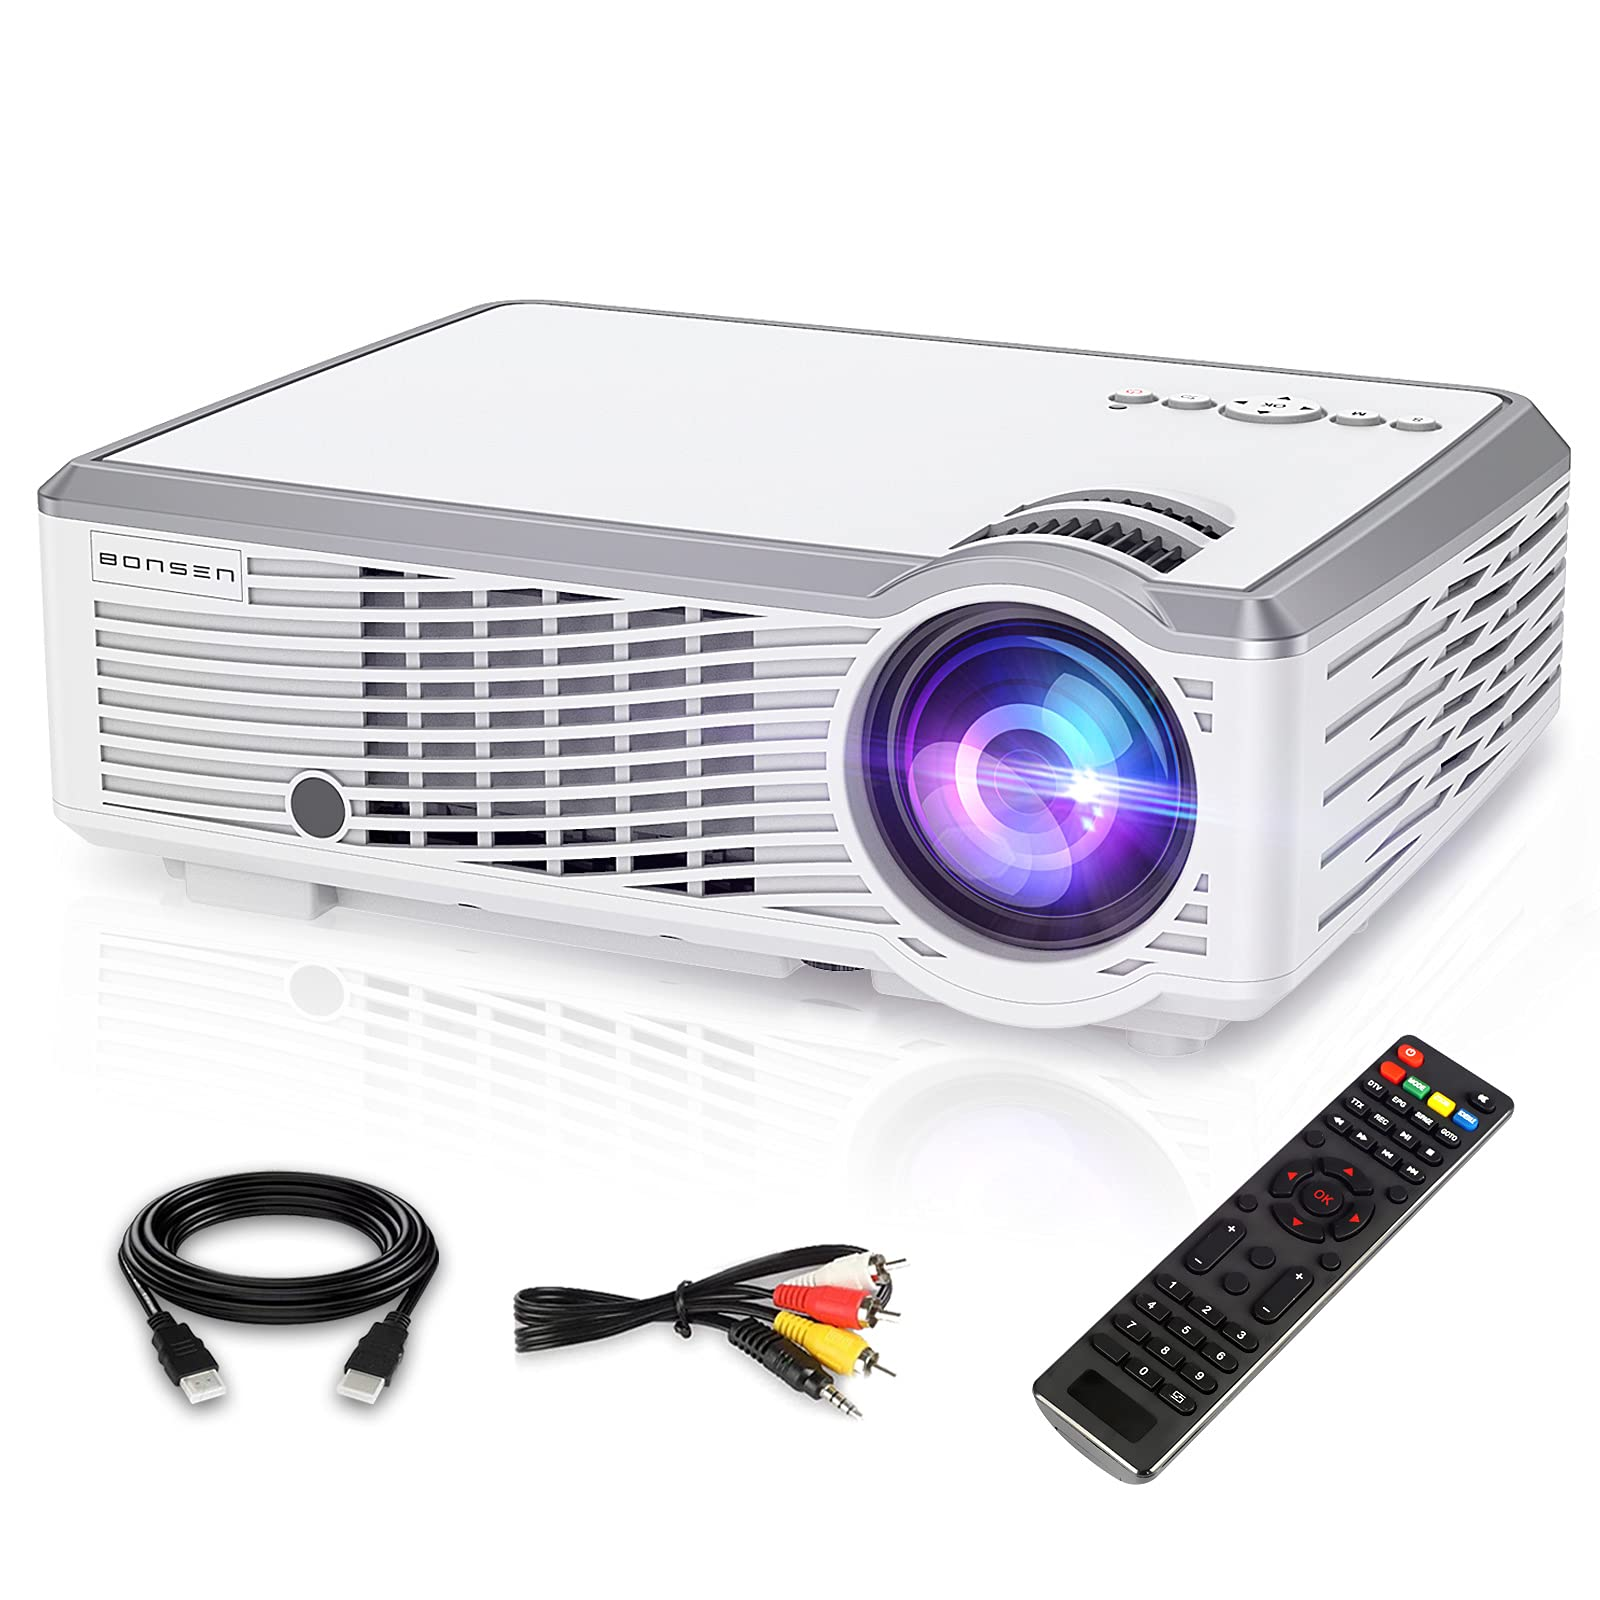 Mini Projector Bonsen Video Projector with 157 inch Projection Screen 30000 Hrs